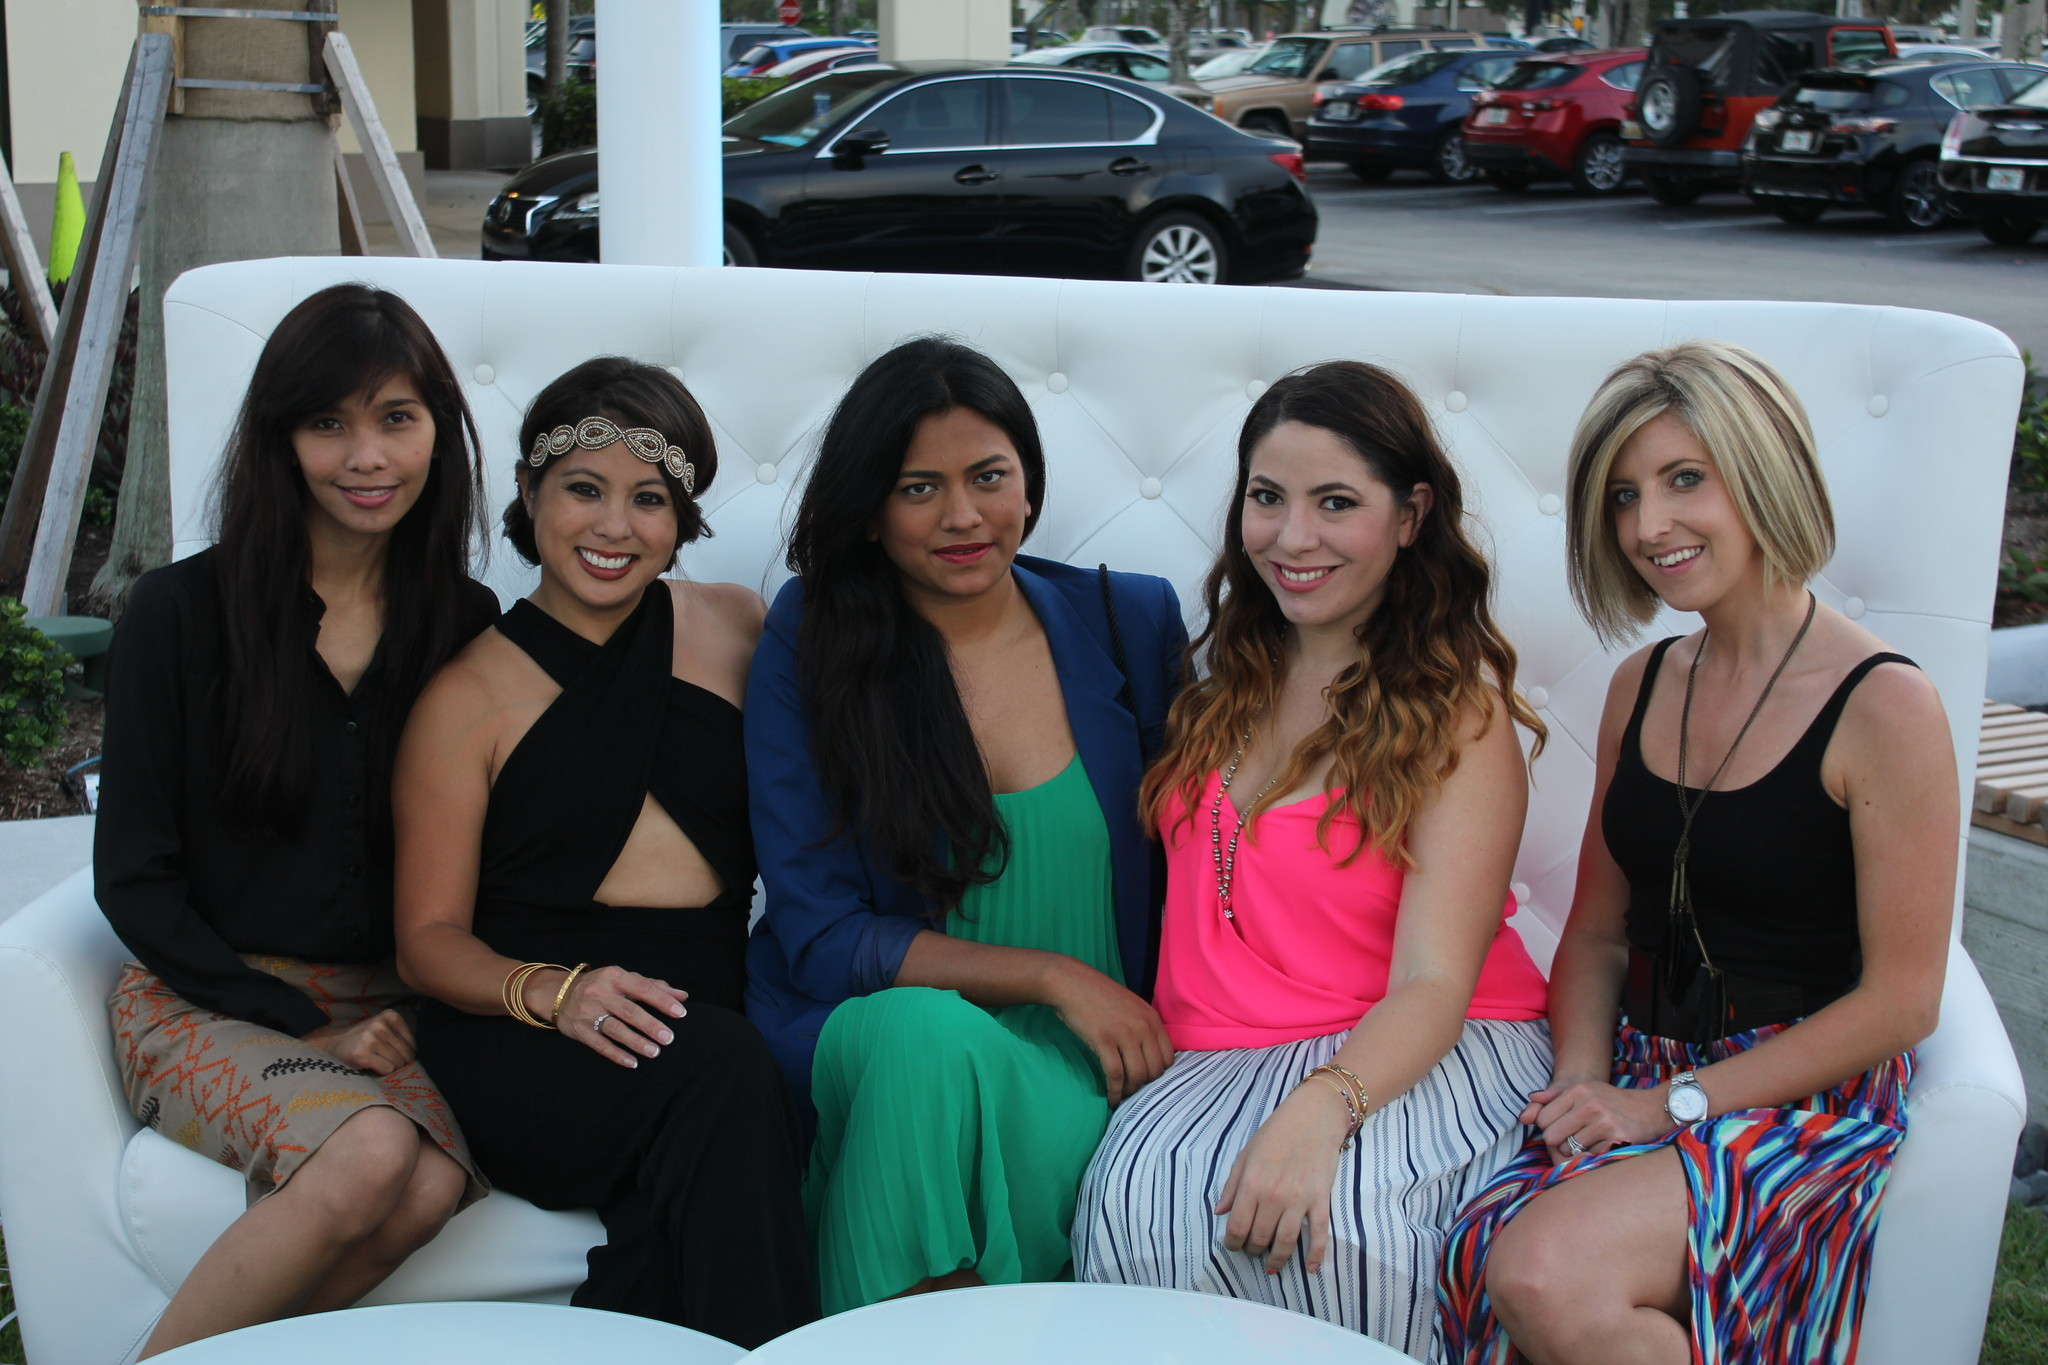 Society Scene photos - Poise Ziegler, Aileen Van Pelt, Afroza Khan, April Erhard and Becca Portor